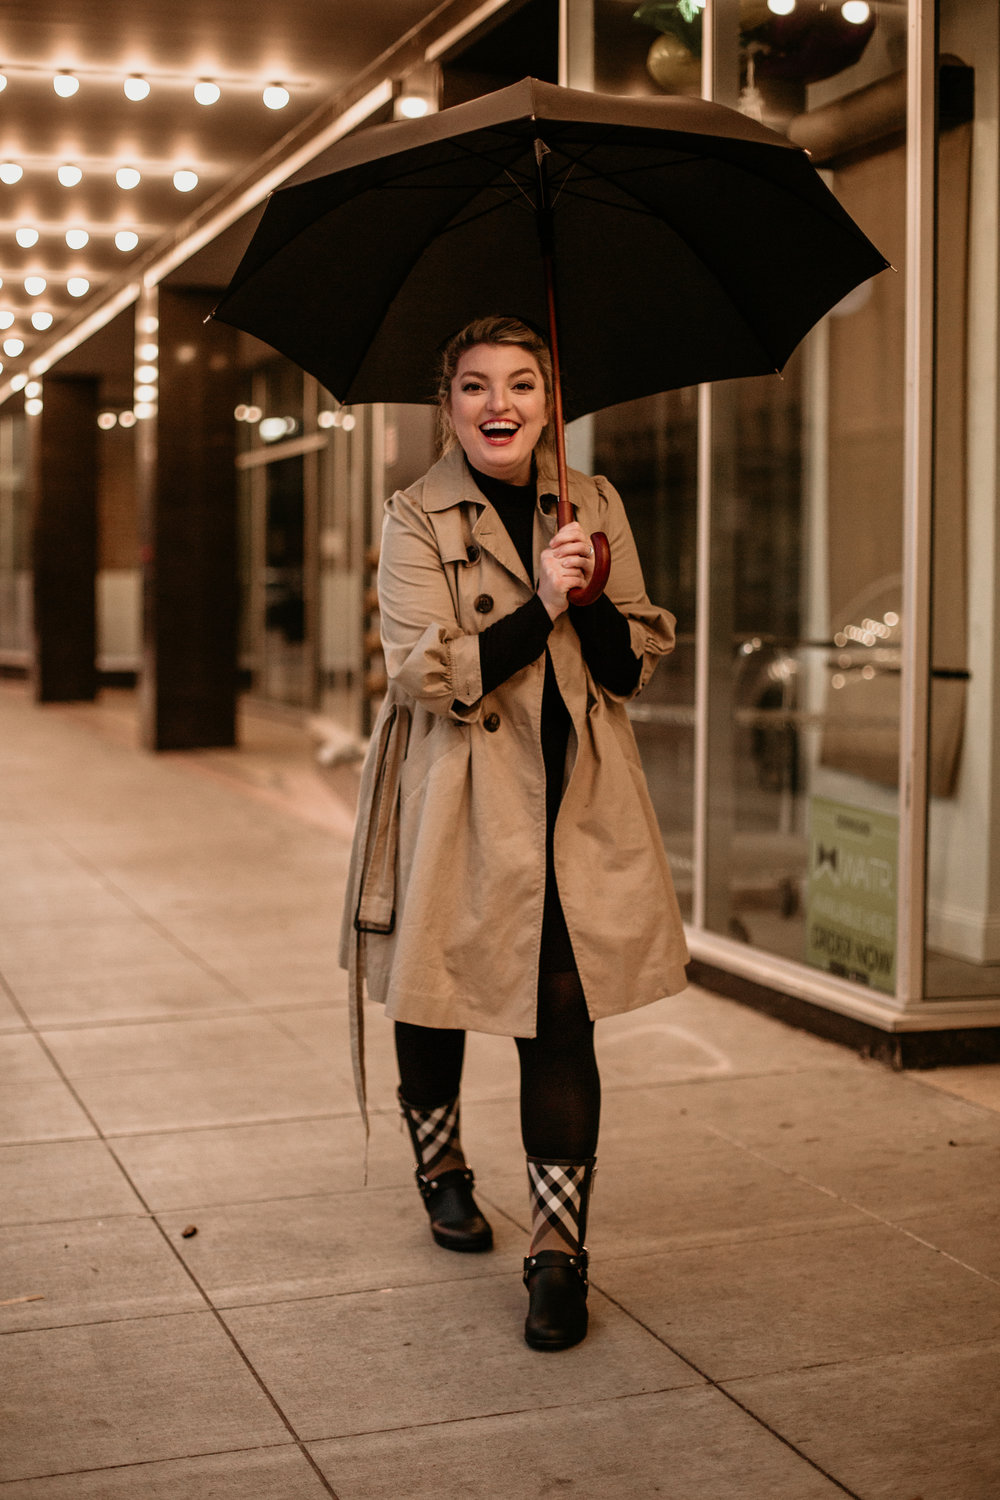 burberry fashion, how to style, how to style boots, how to style rain boots